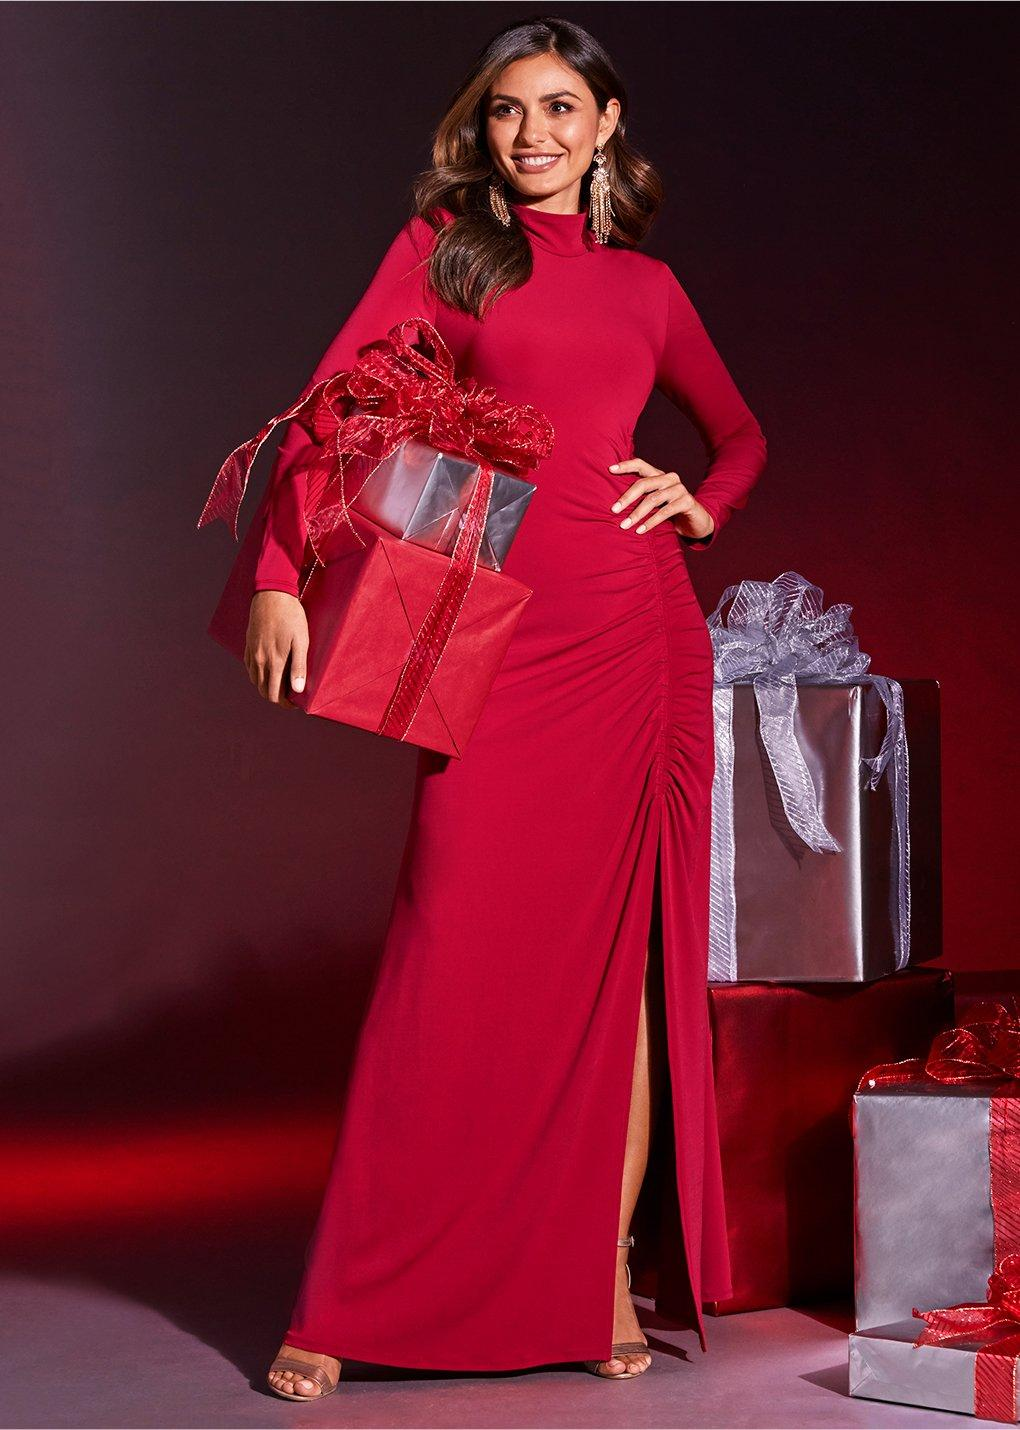 model wearing long sleeve mock neck red gown while holding wrapped gifts.